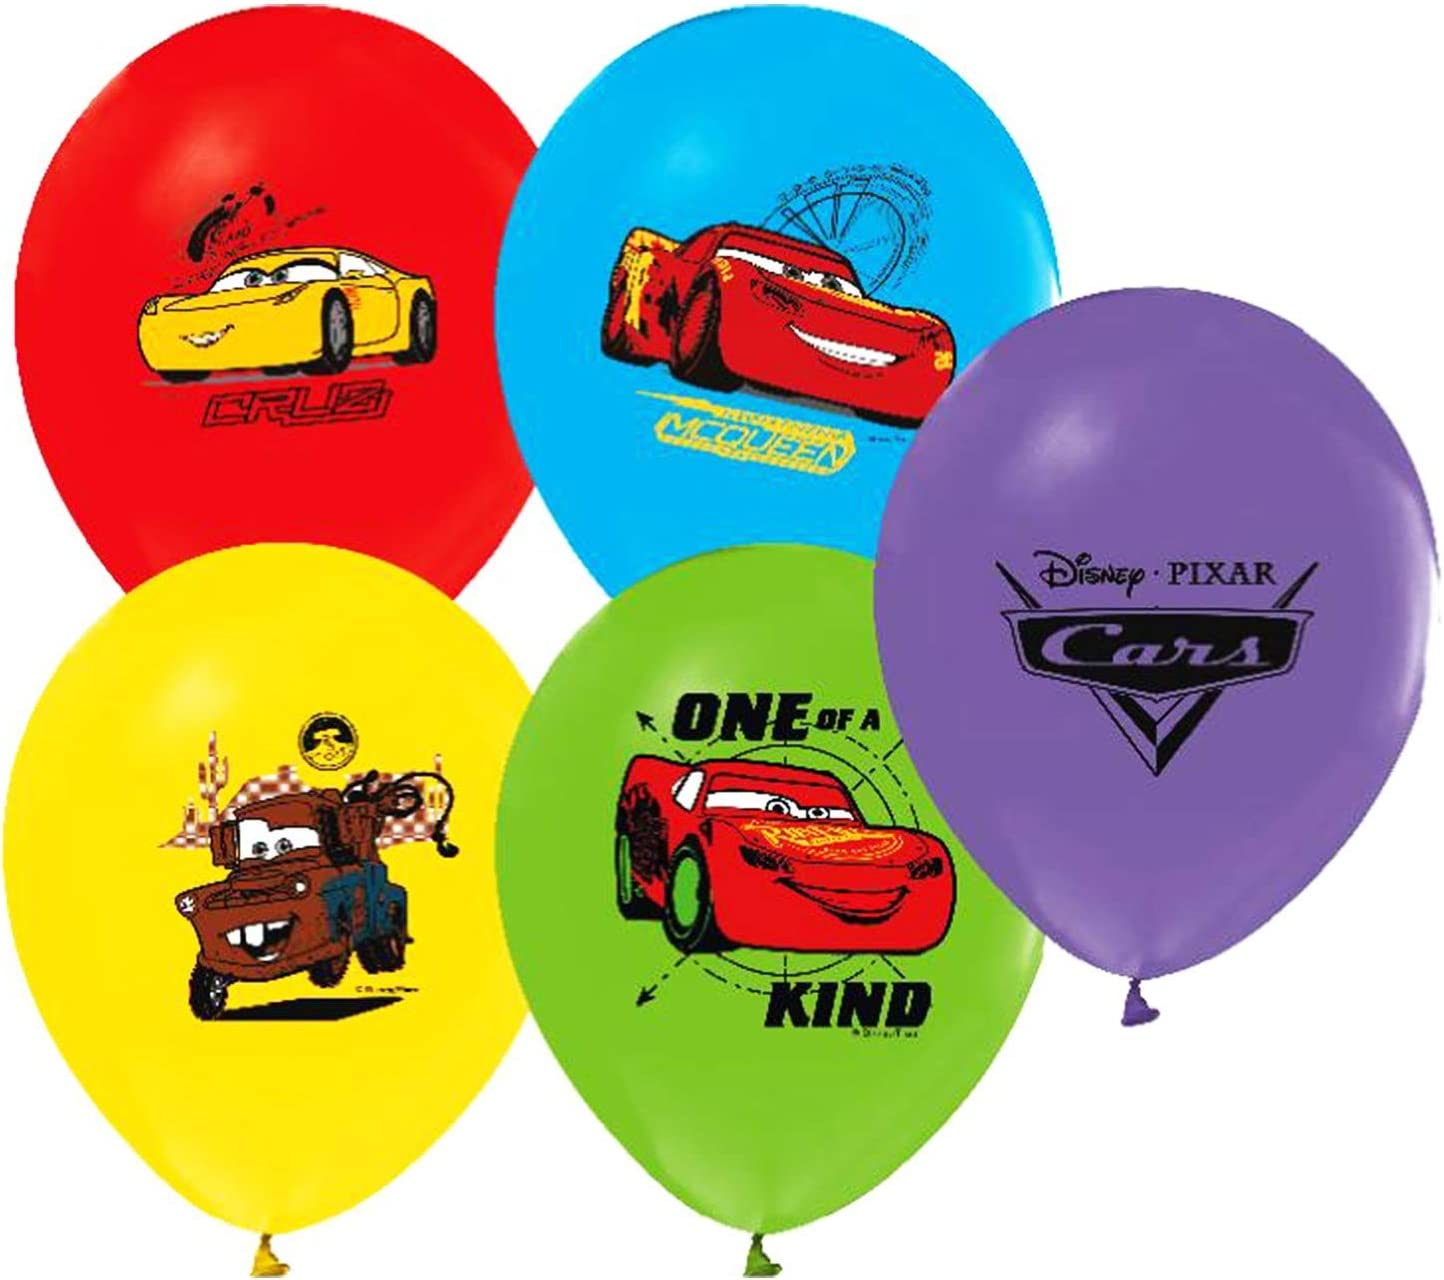 Amazon.com: Disney Cars Balloons 12.0 in Pixar Látex ...